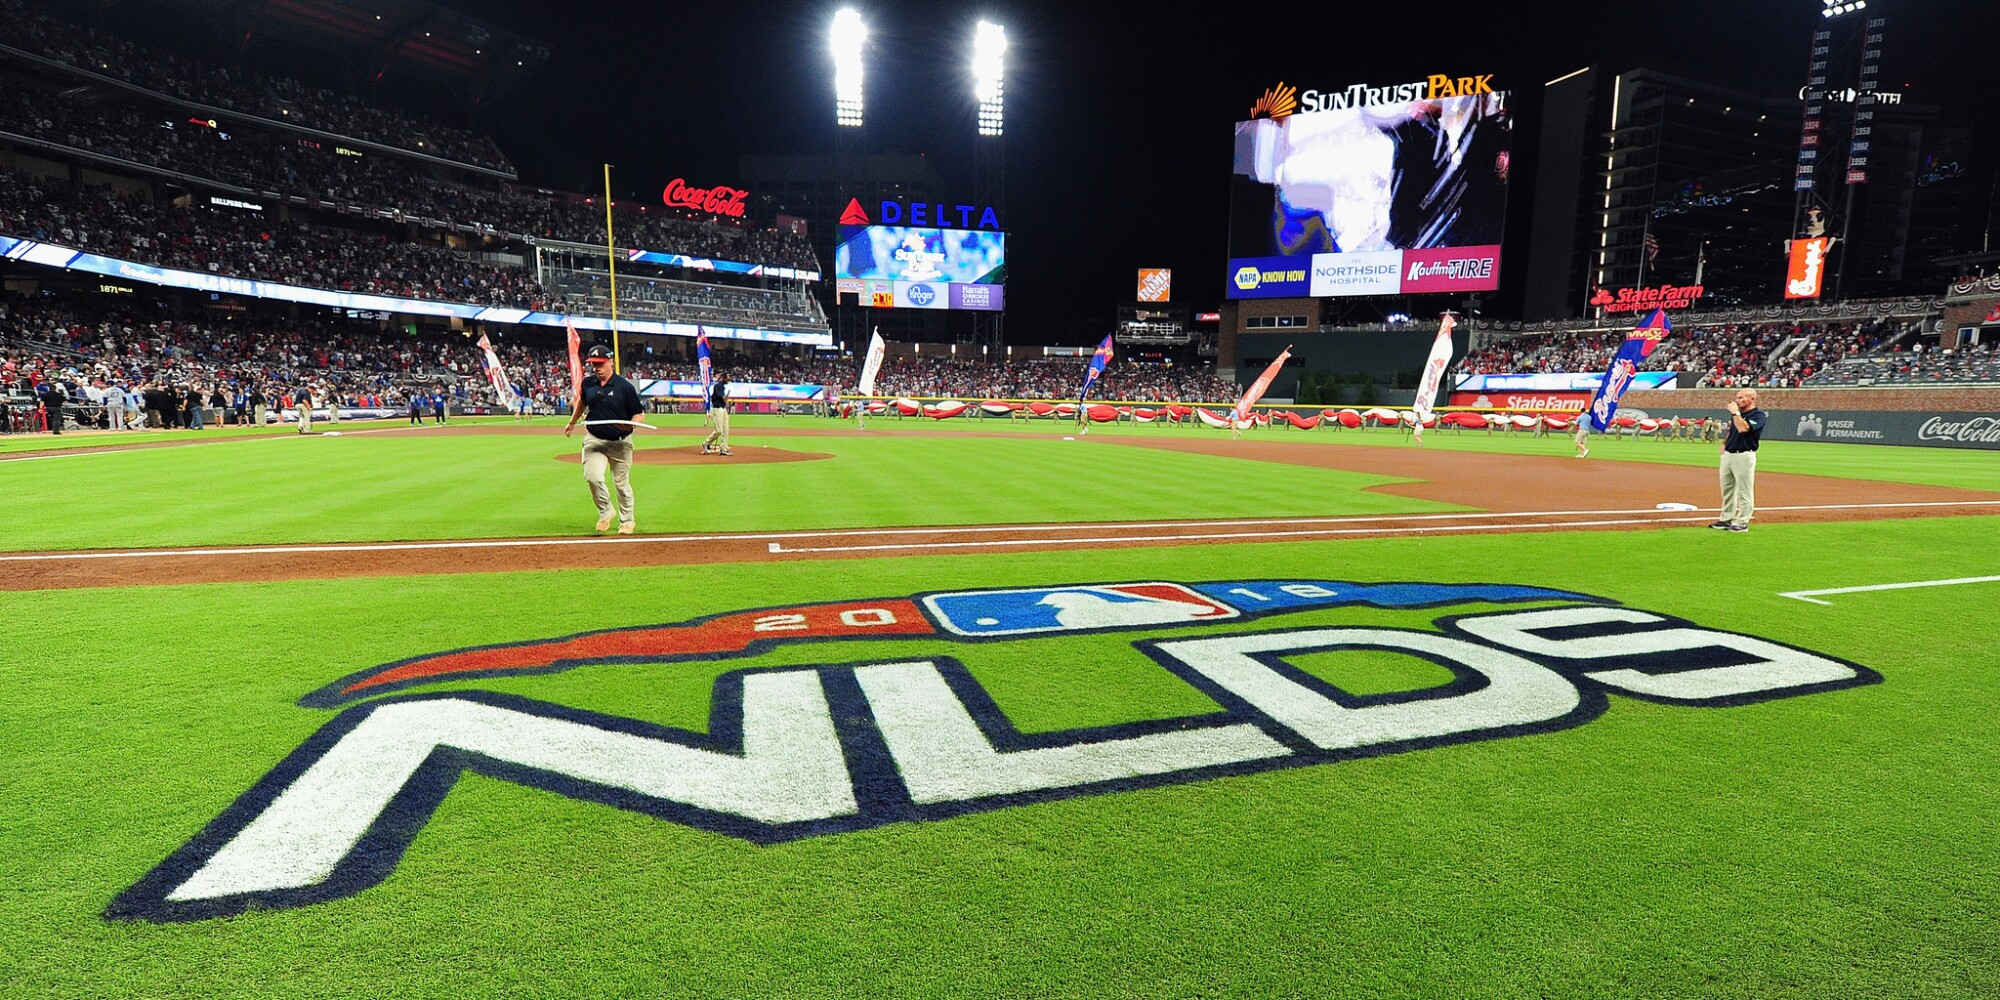 Dodgers-Braves NLDS Game 4: Dodgers top Braves, head to NLCS to take on Brewers